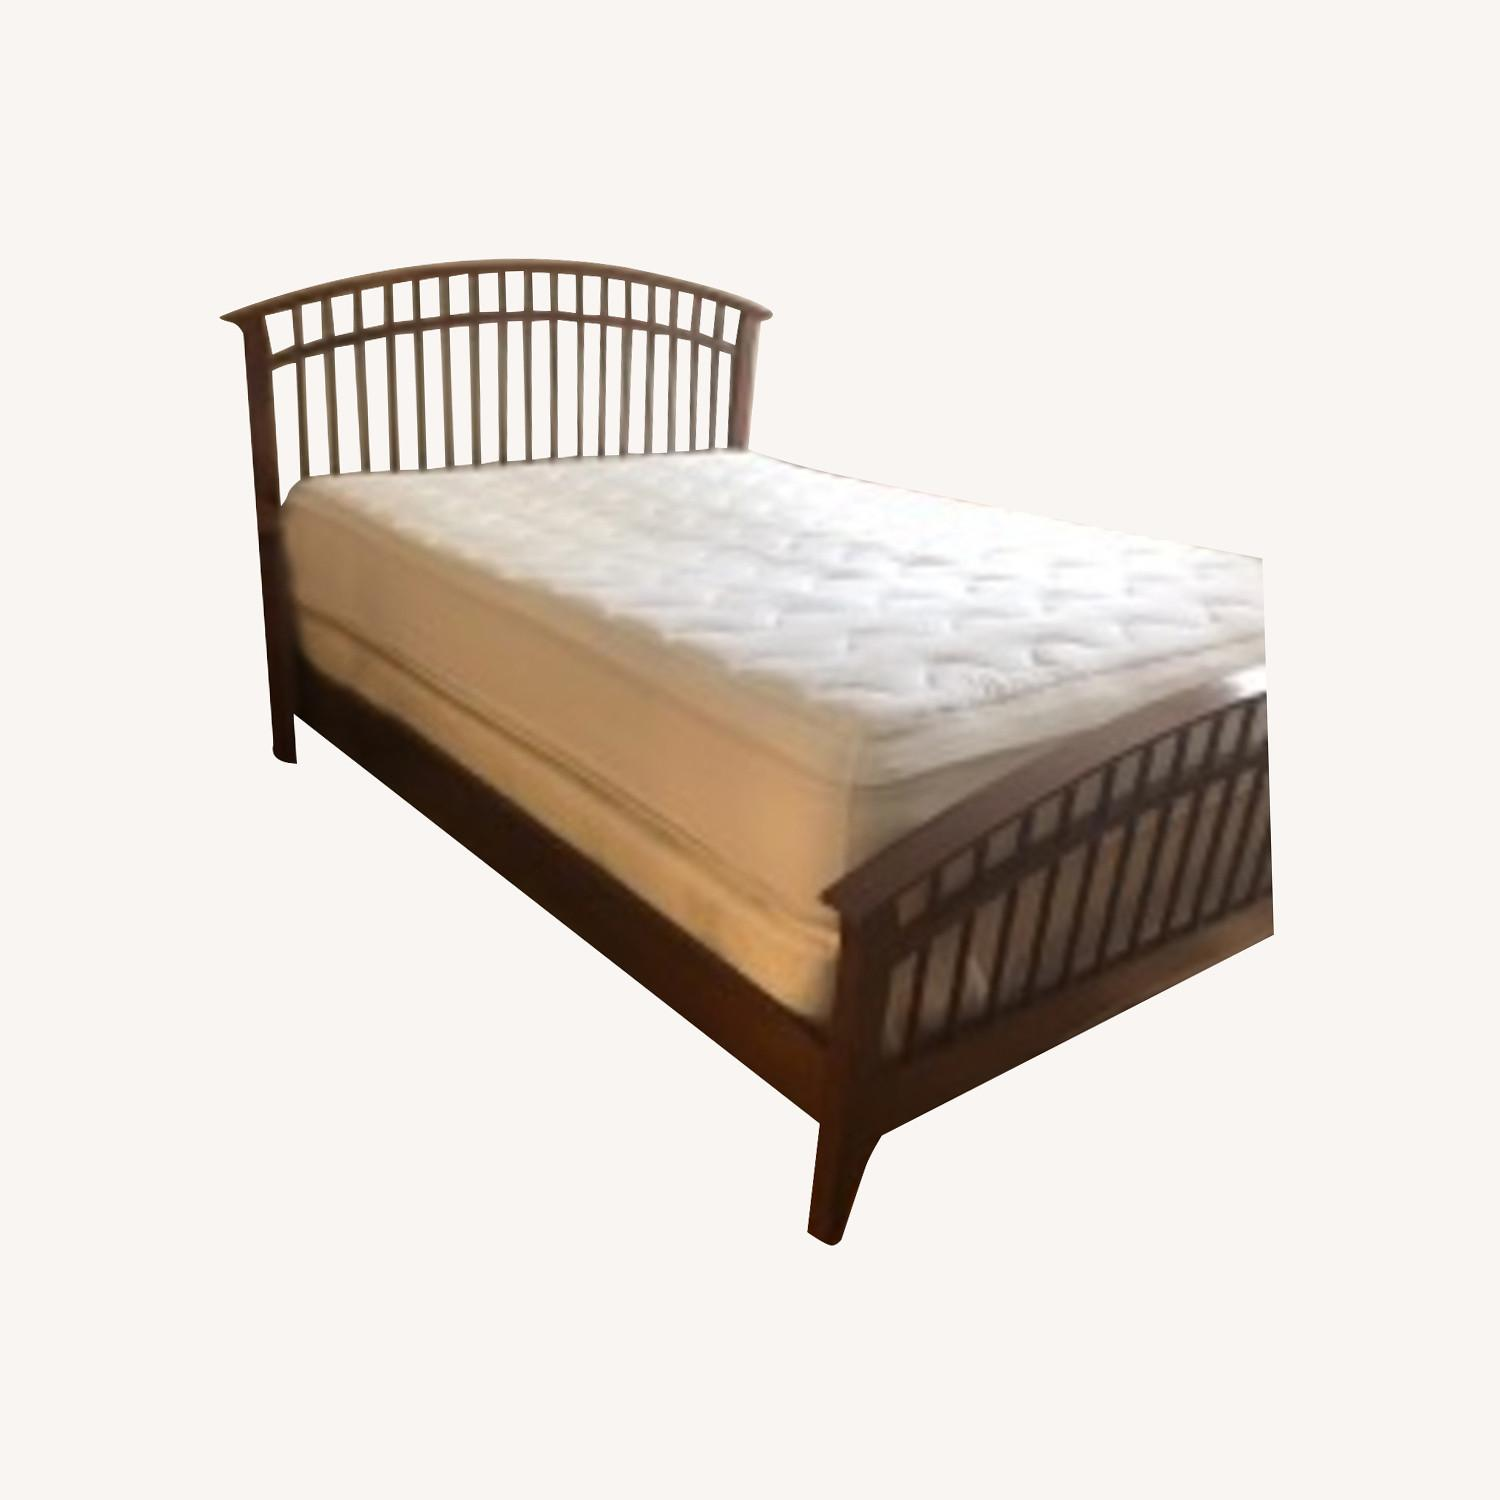 Thomasville Furniture Industries Spindle Head and Footboard - image-0